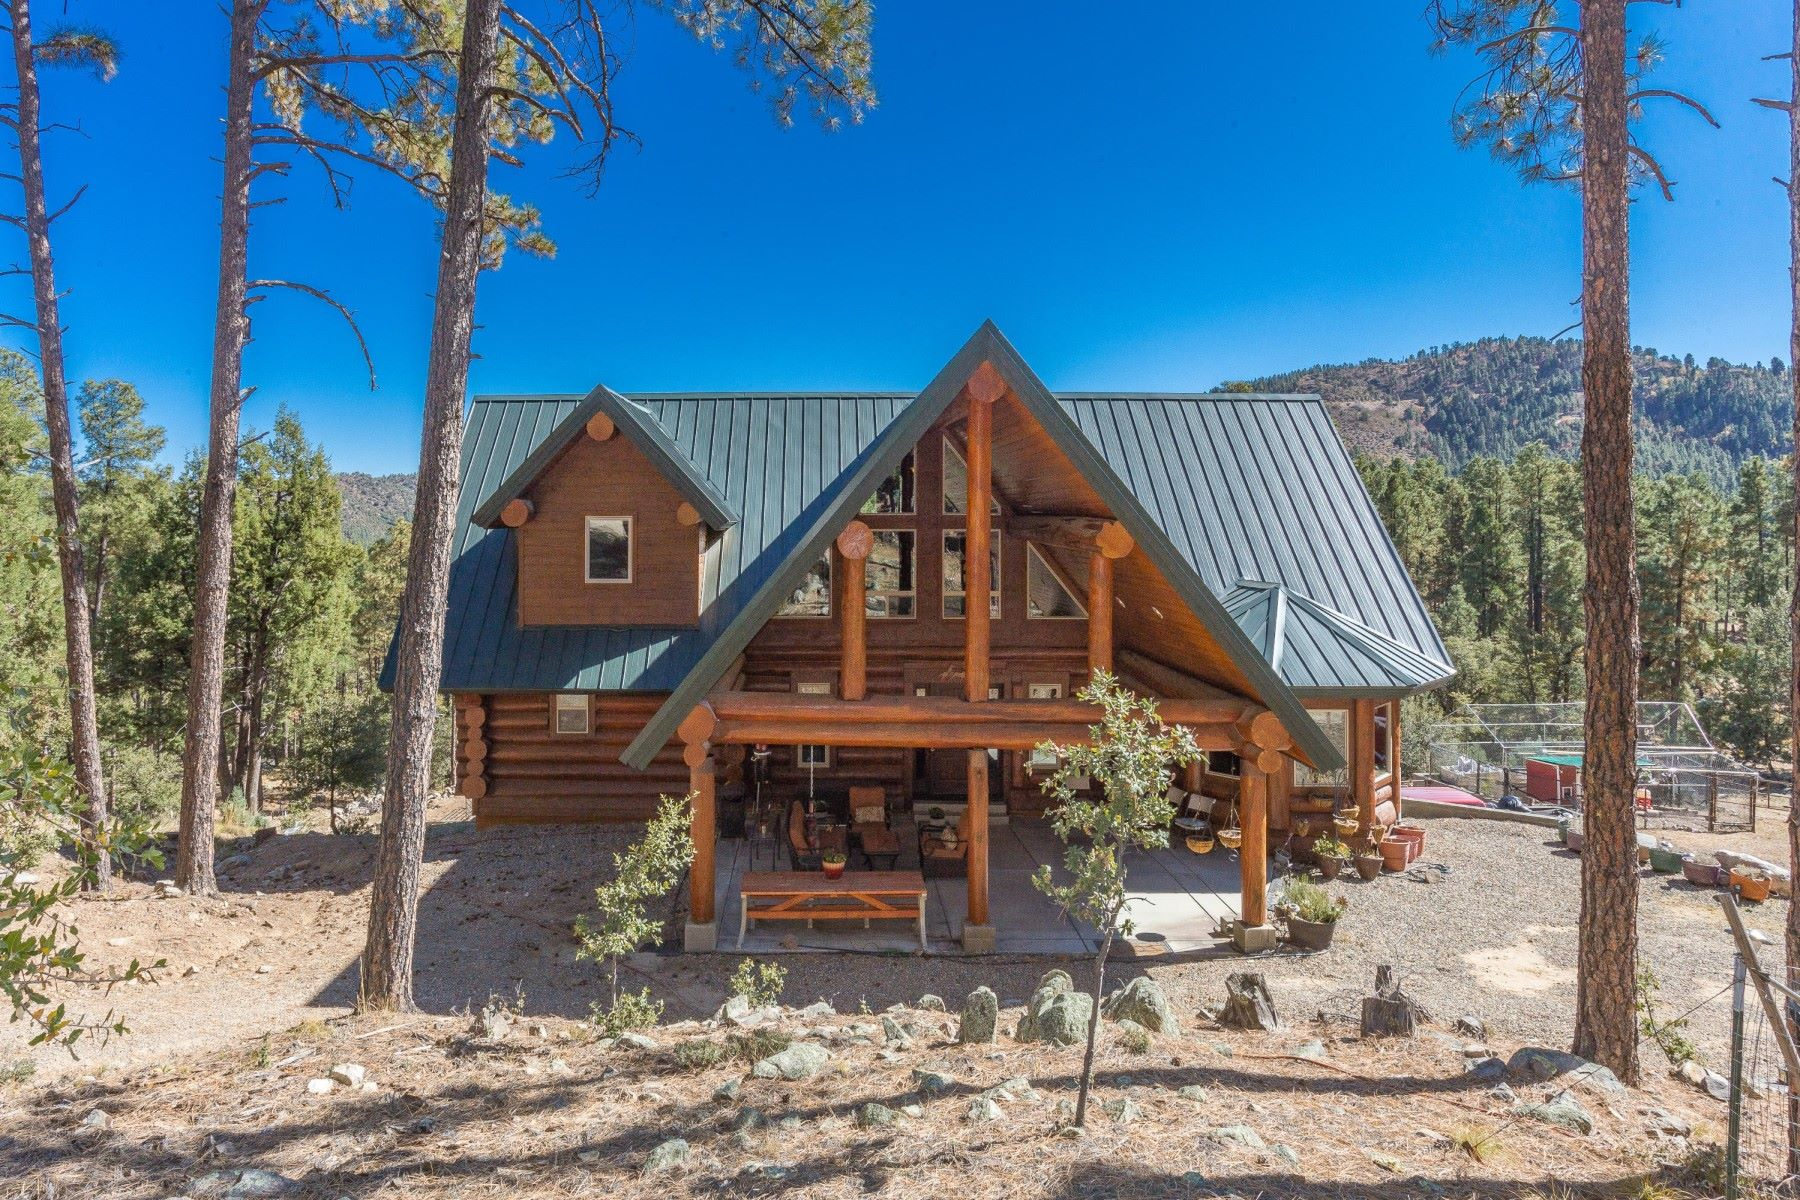 Single Family Homes for Sale at Stunning Canadian Log Cabin 5975 S Morning Star Lane Prescott, Arizona 86303 United States